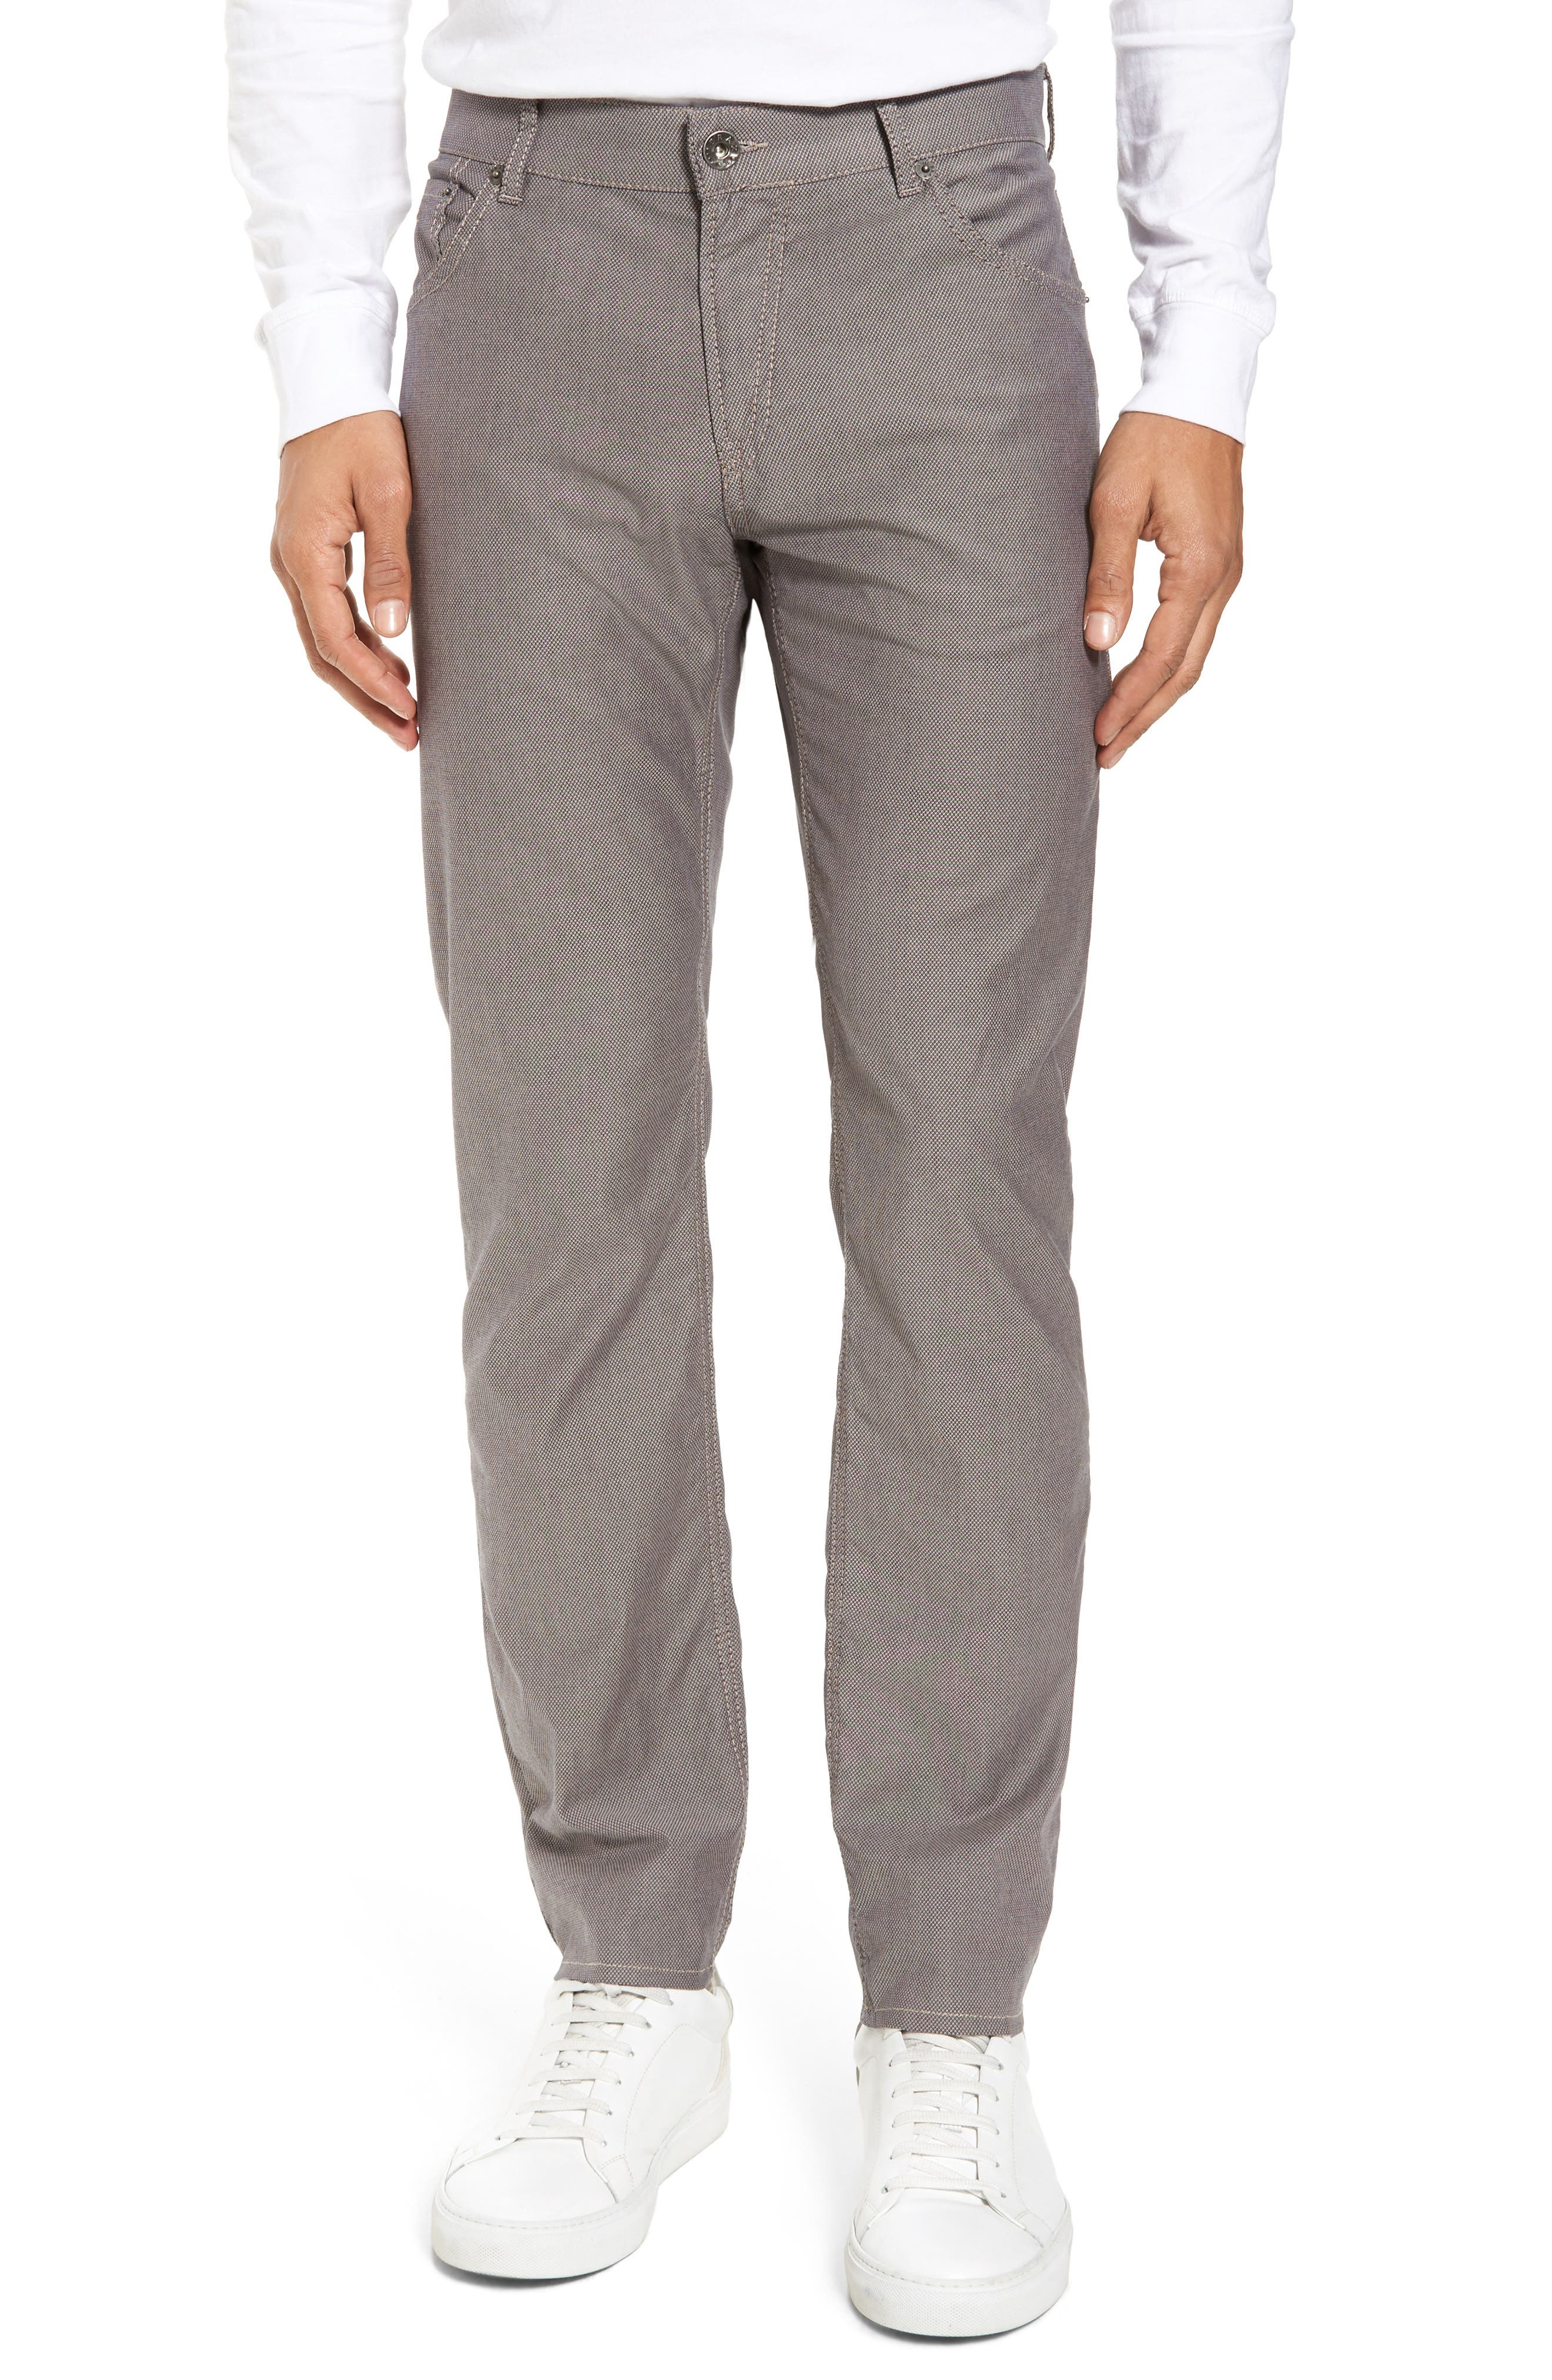 Chuck Stretch Cotton Pants,                         Main,                         color, Beige